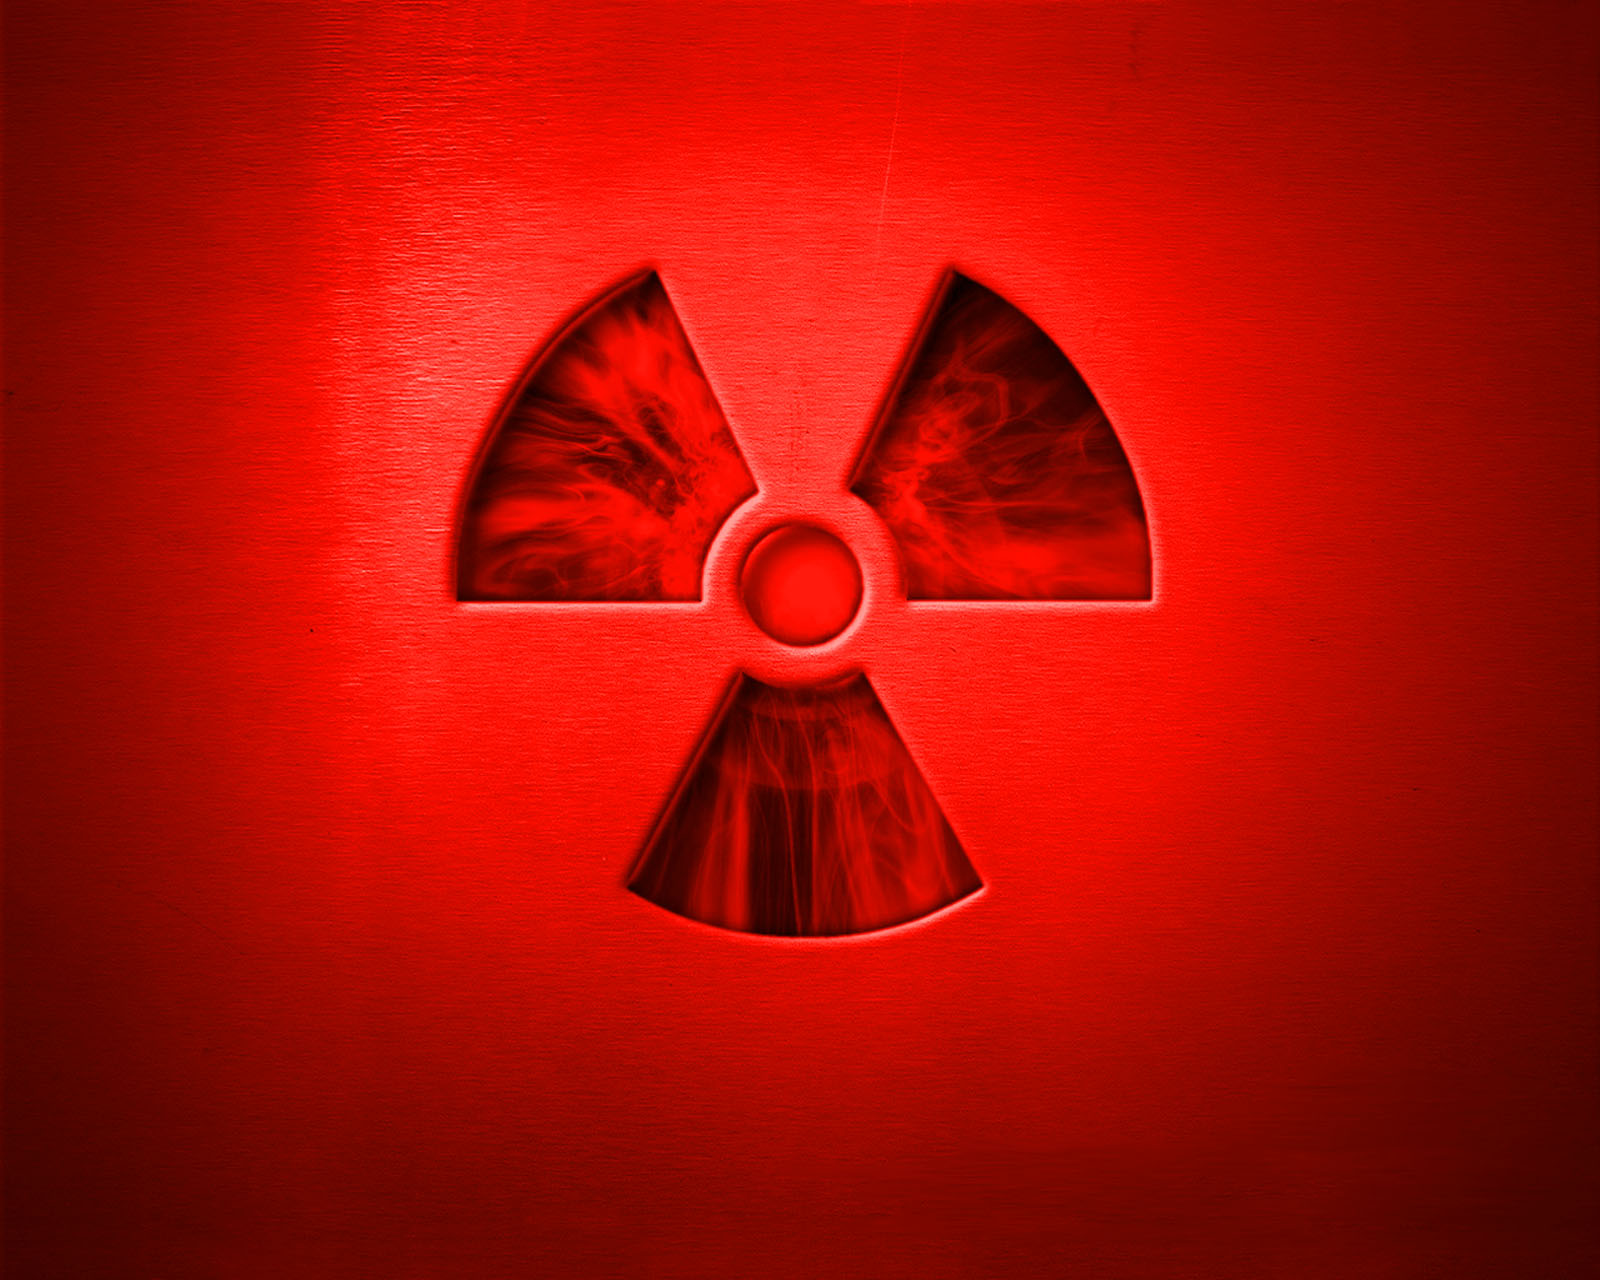 radiation hazard symbol hd wallpaper hd wallpapers backgrounds photos pictures image pc. Black Bedroom Furniture Sets. Home Design Ideas